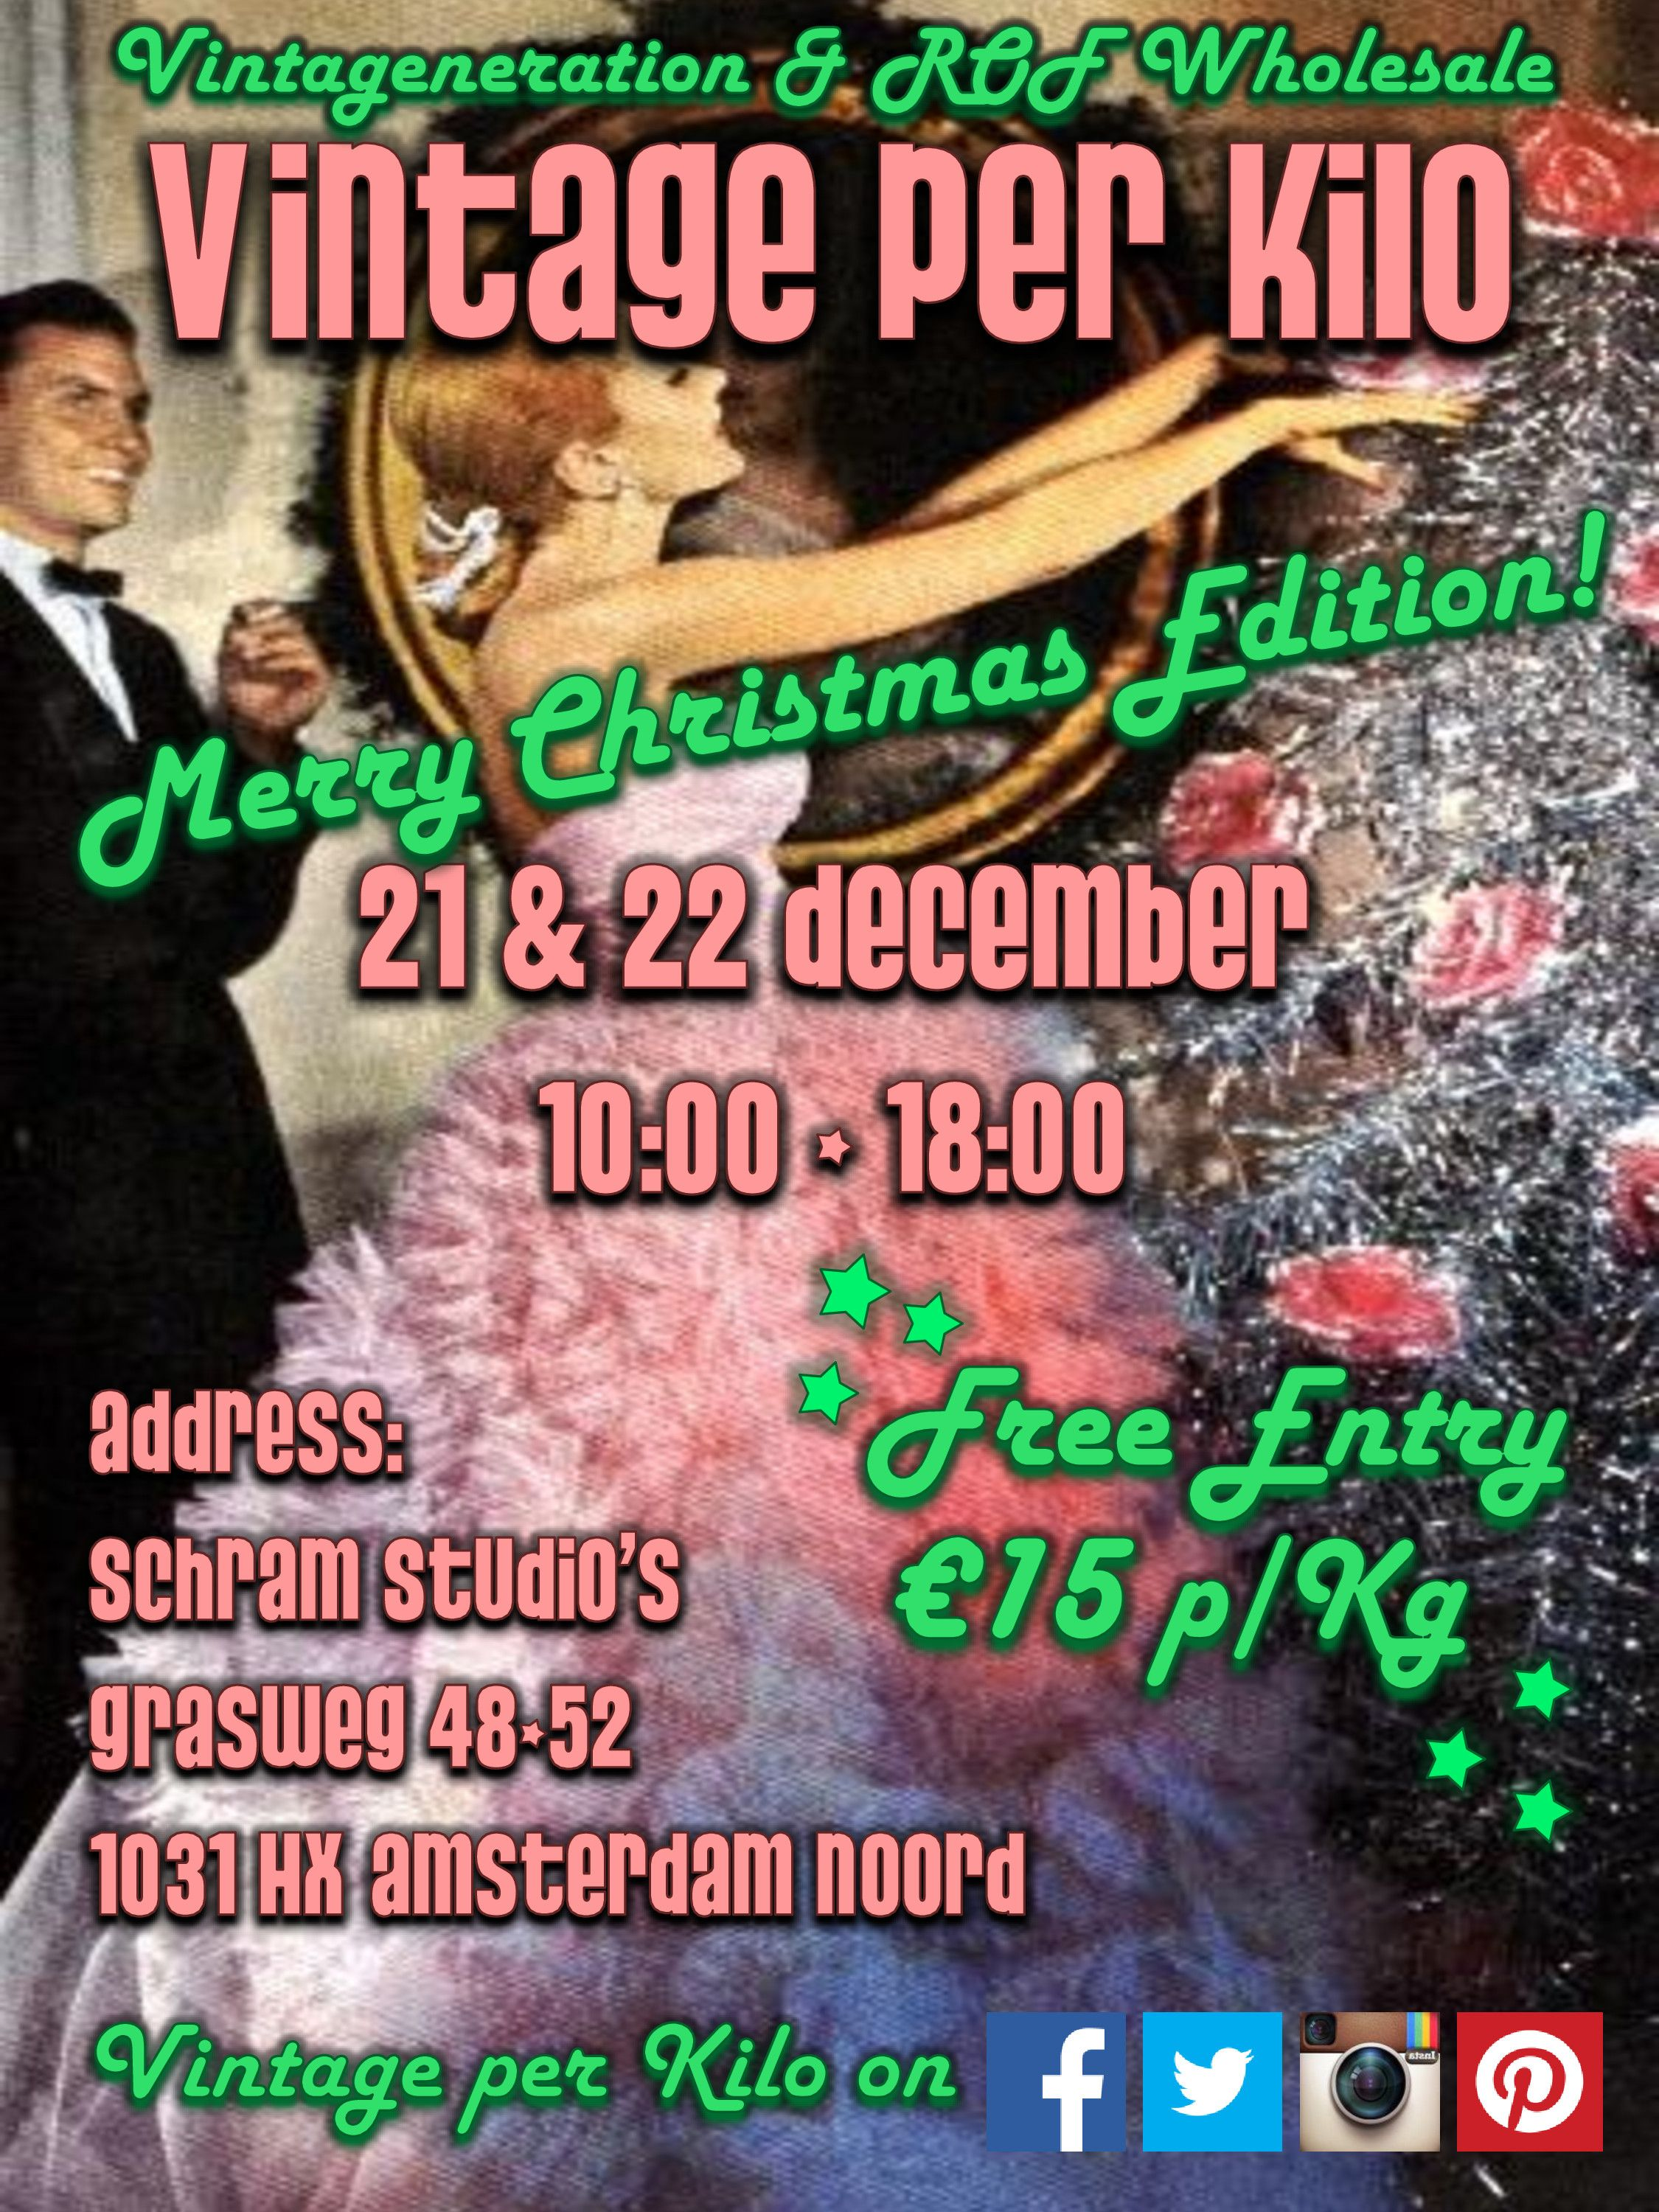 21 & 22 december 2013 @Vintage per Kilo will be at Schram Studio's Amsterdam Noord! This cosy place will be filled with Xmas, New Years eve gowns, party dresses, winter warm wooly items Men's vintage and much, much more! Check https://www.facebook.com/events/1400502713524281/